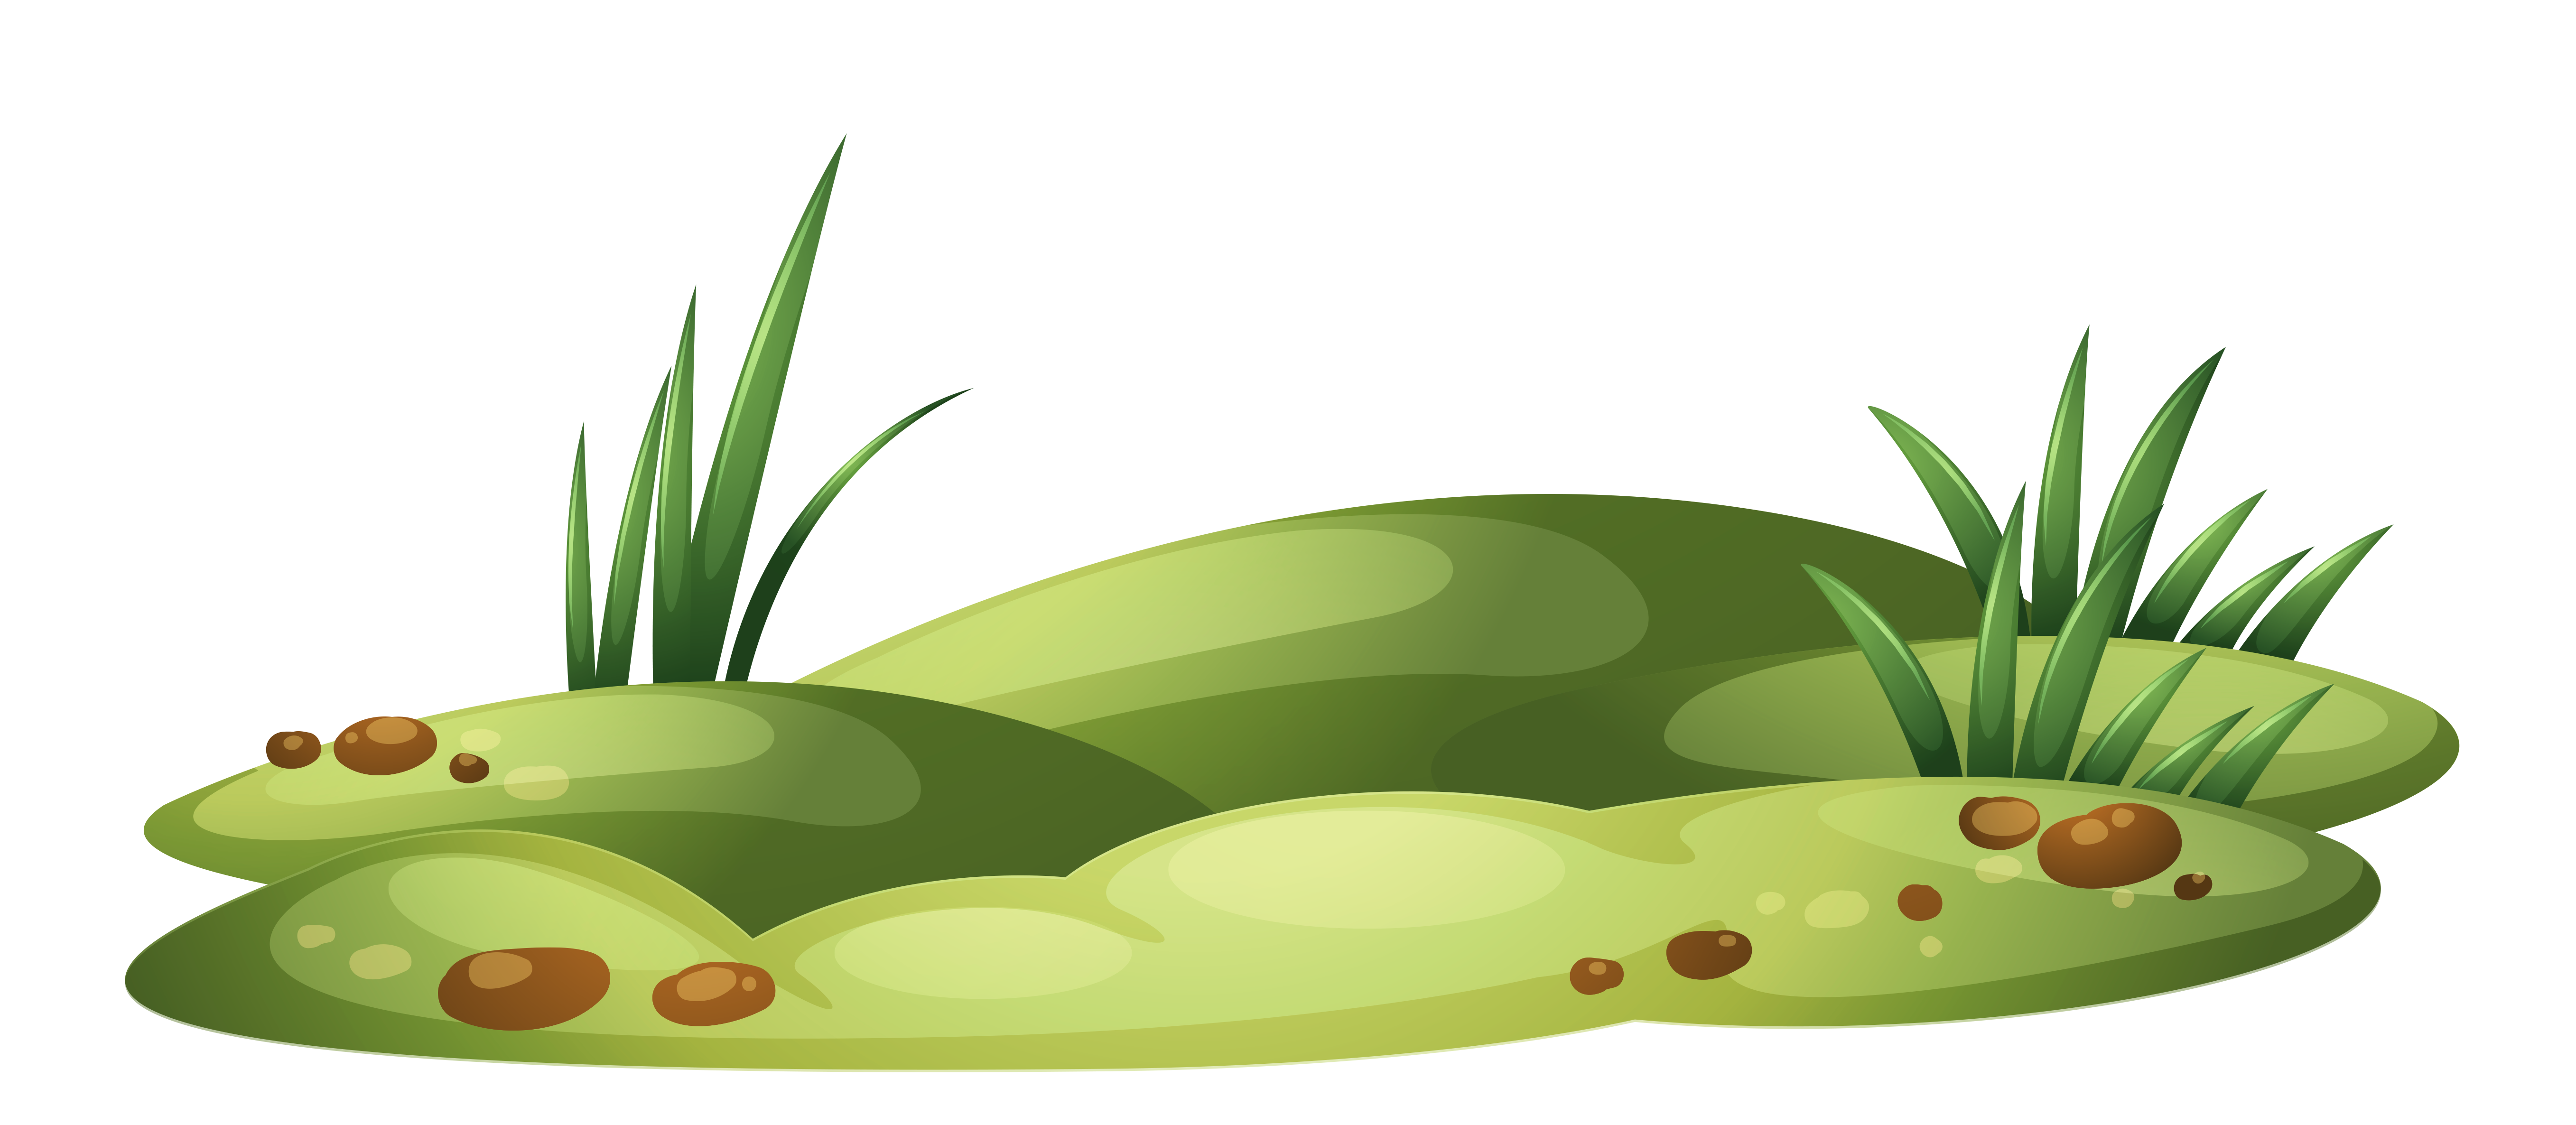 Patch Of Grass Clipart.